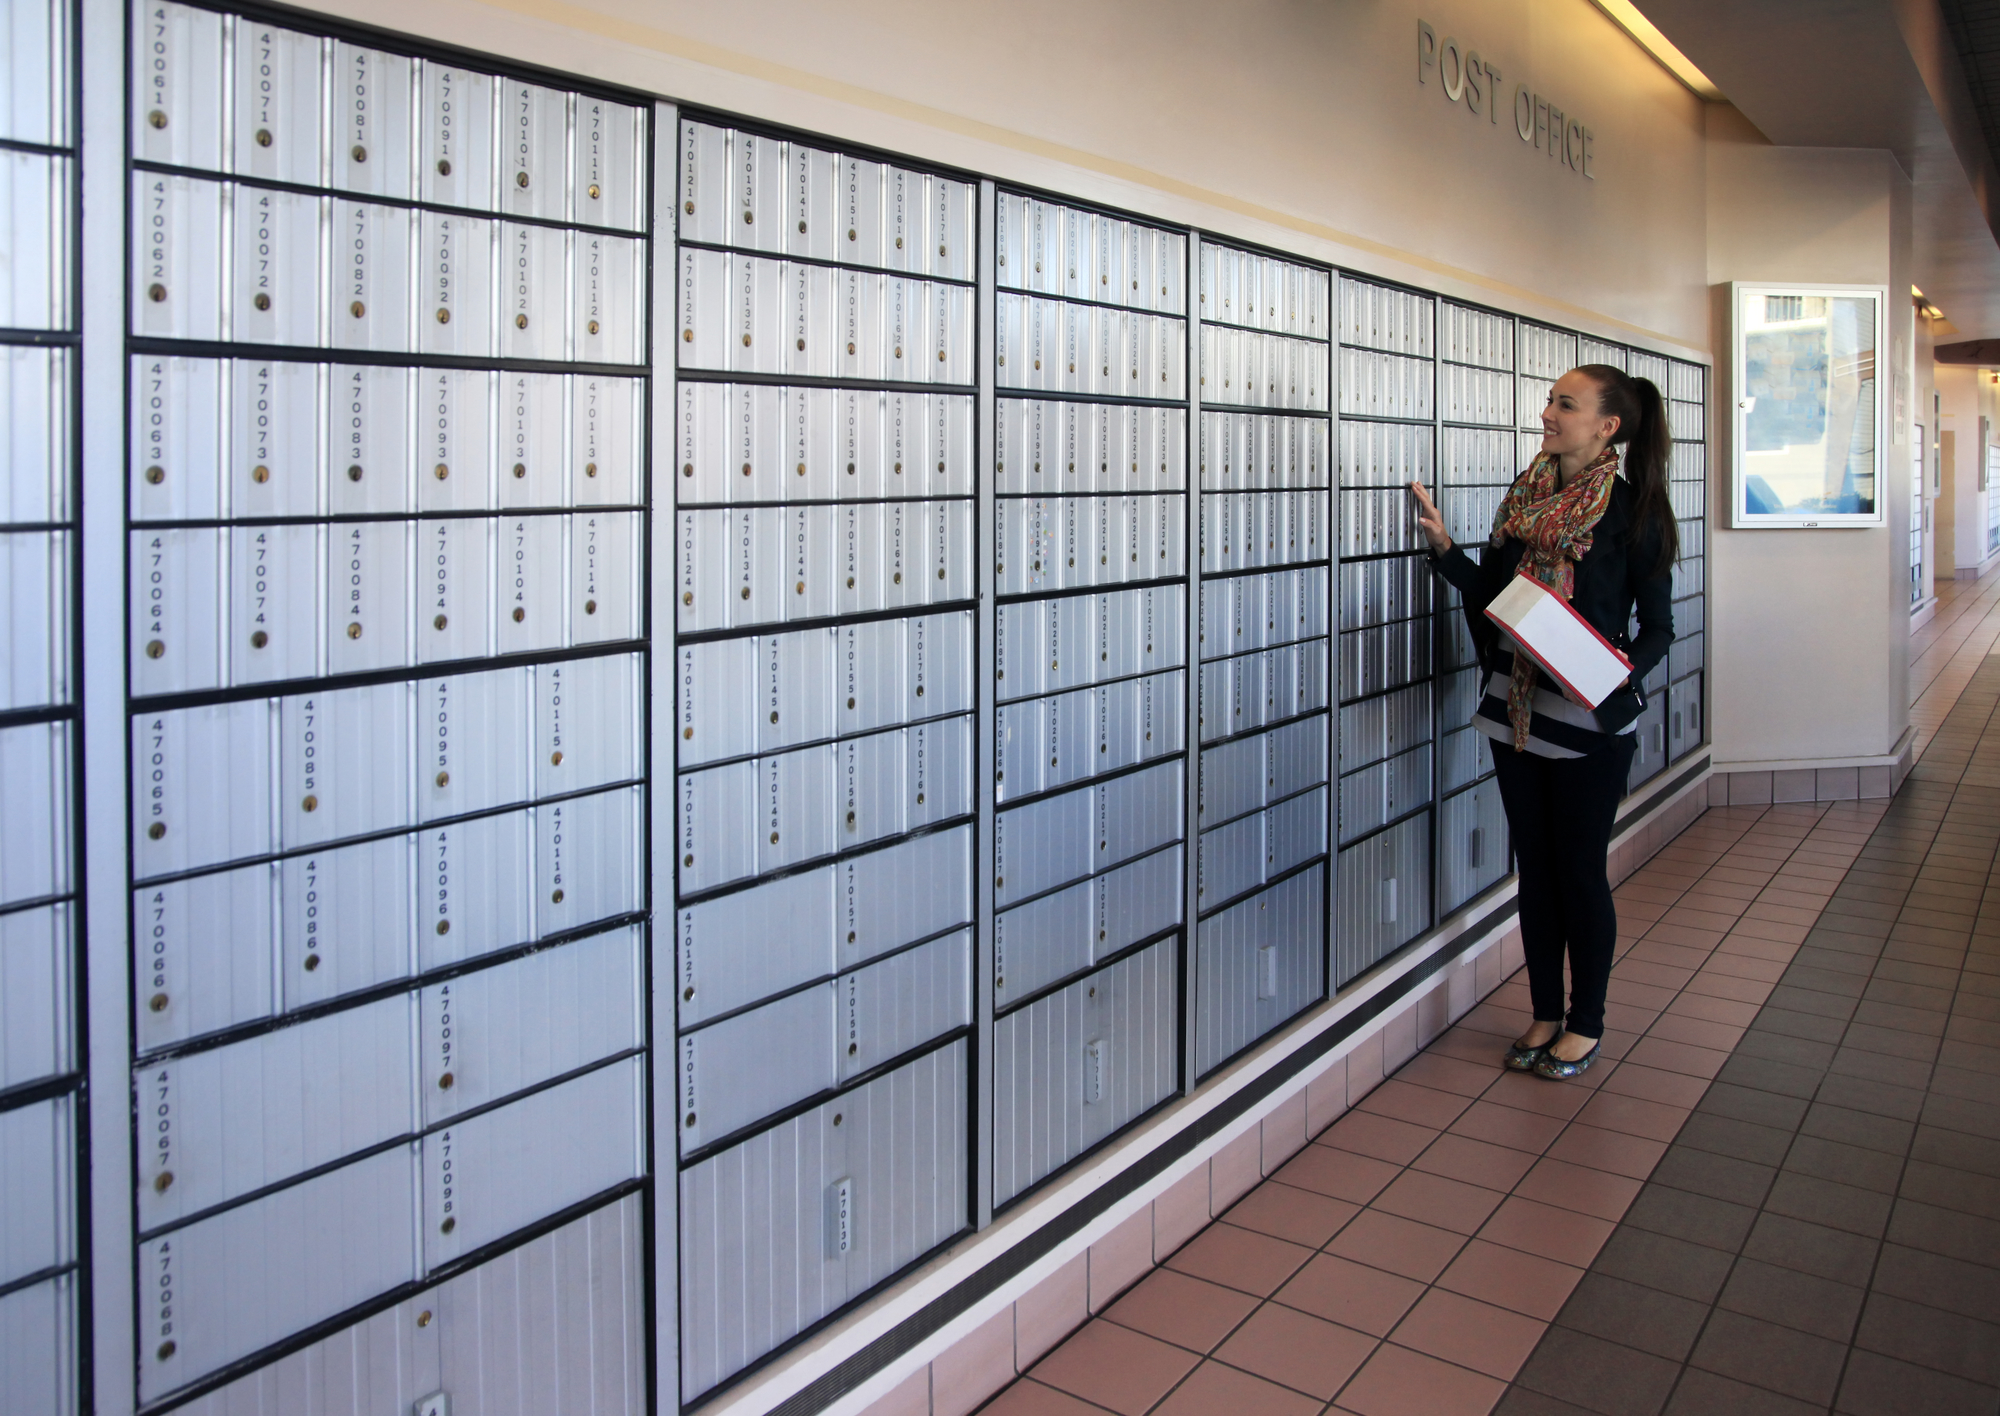 Post office Mailbox Rental